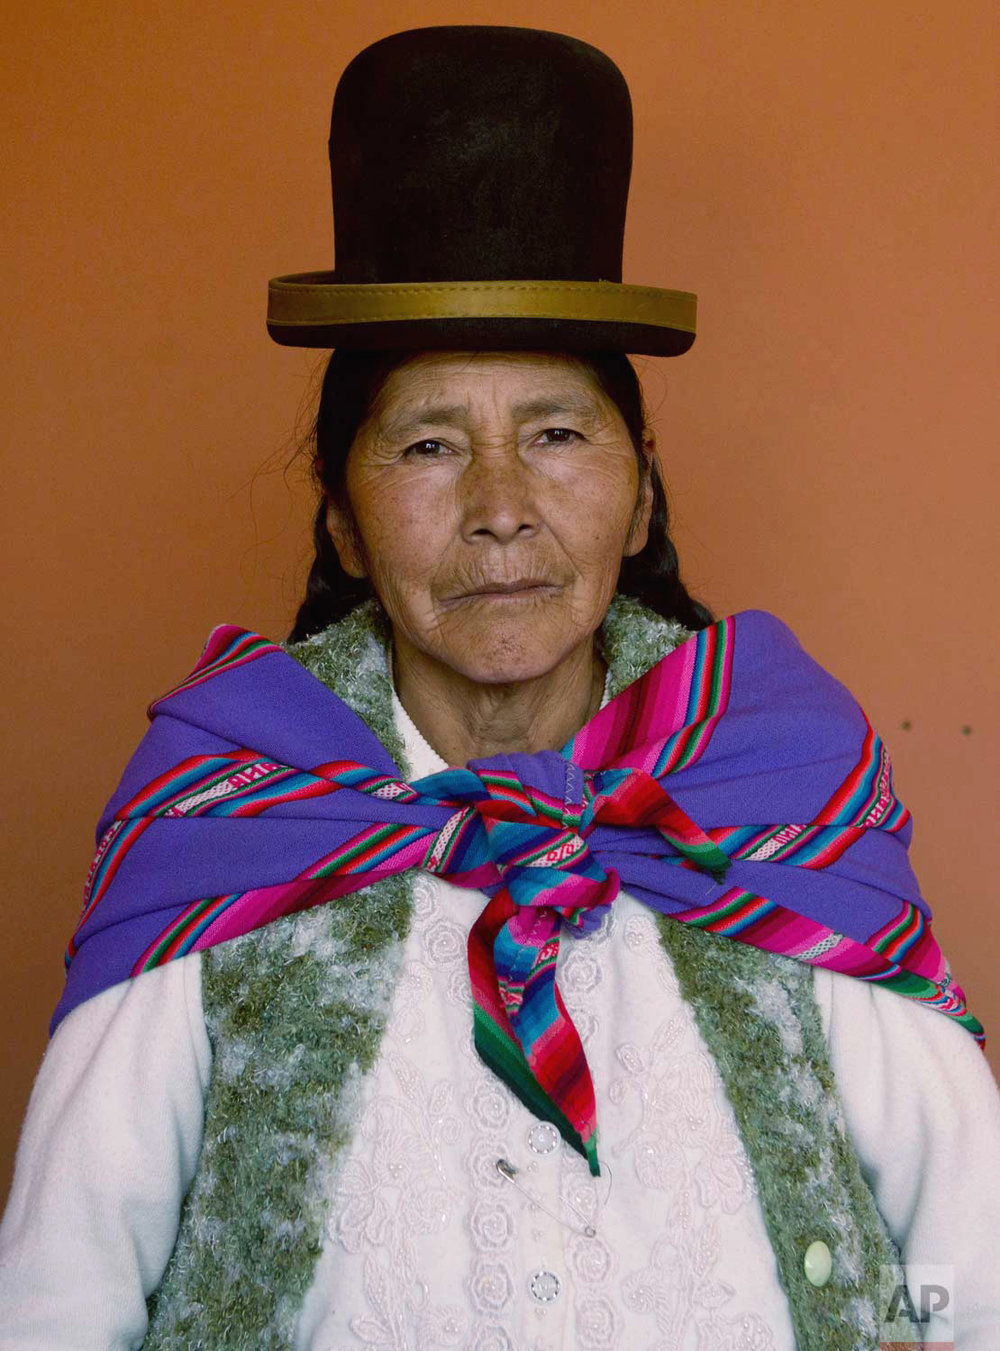 "In this May 15, 2017 photo, midwife Leonarda Quispe, 63, poses for a portrait at the Nila Heredia hospital in Patacamaya, Bolivia. Bolivia's midwife training program is partially financed by the U.N. Population Fund, which has supported similar initiatives in the Andean country. ""Women prefer us (midwives) because they're scared of the doctors,"" Quispe said. (AP Photo/Juan Karita)"